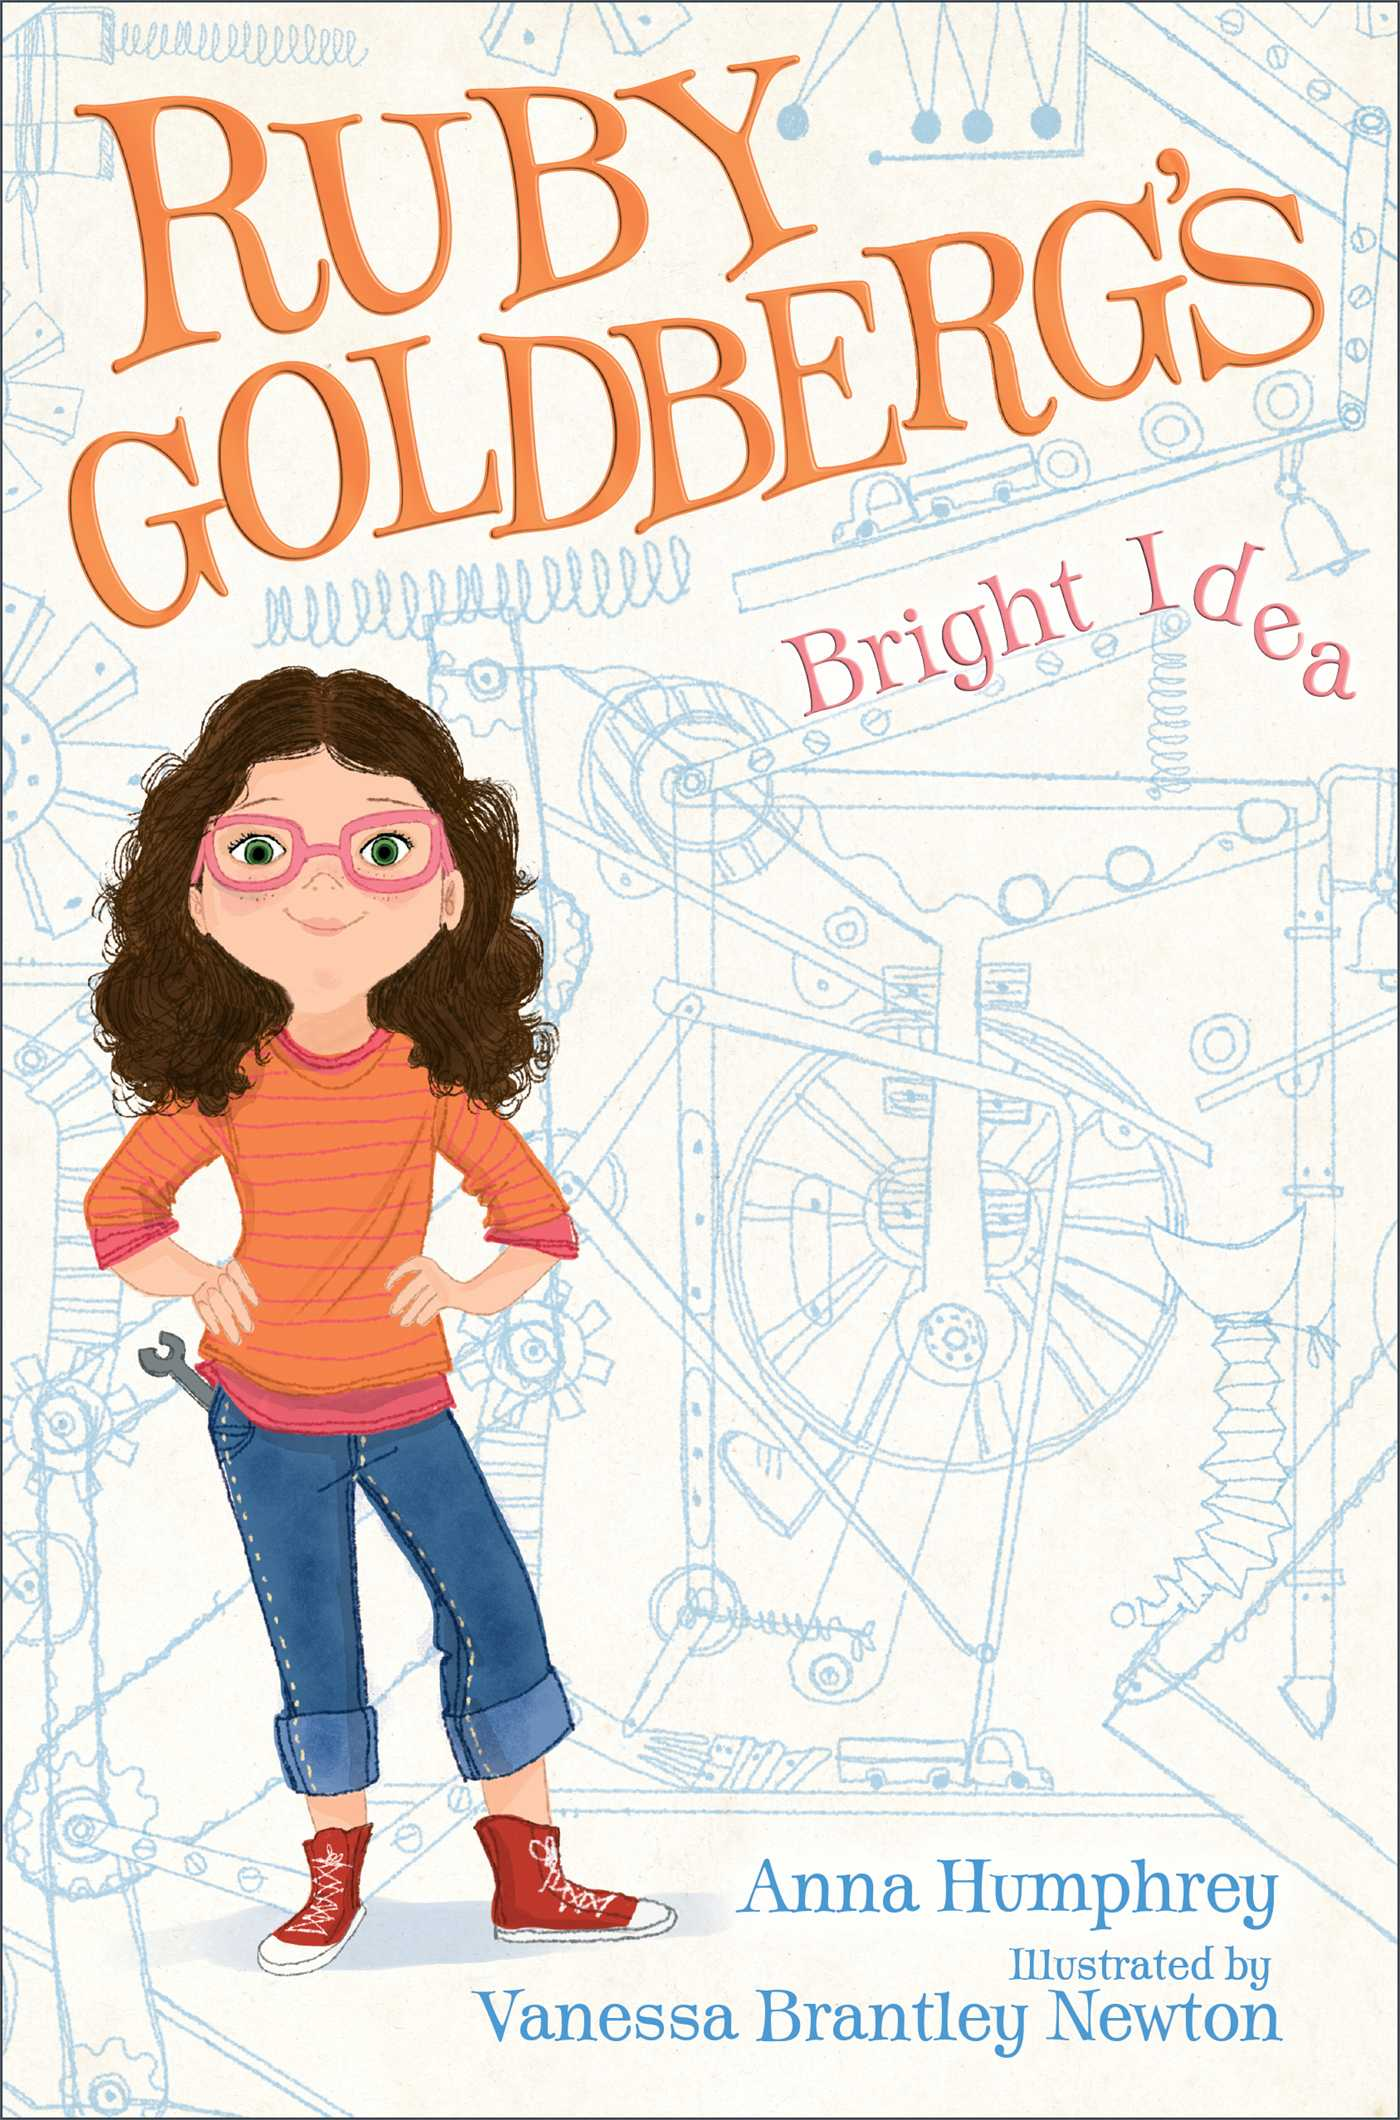 Ruby-goldbergs-bright-idea-9781442480278_hr